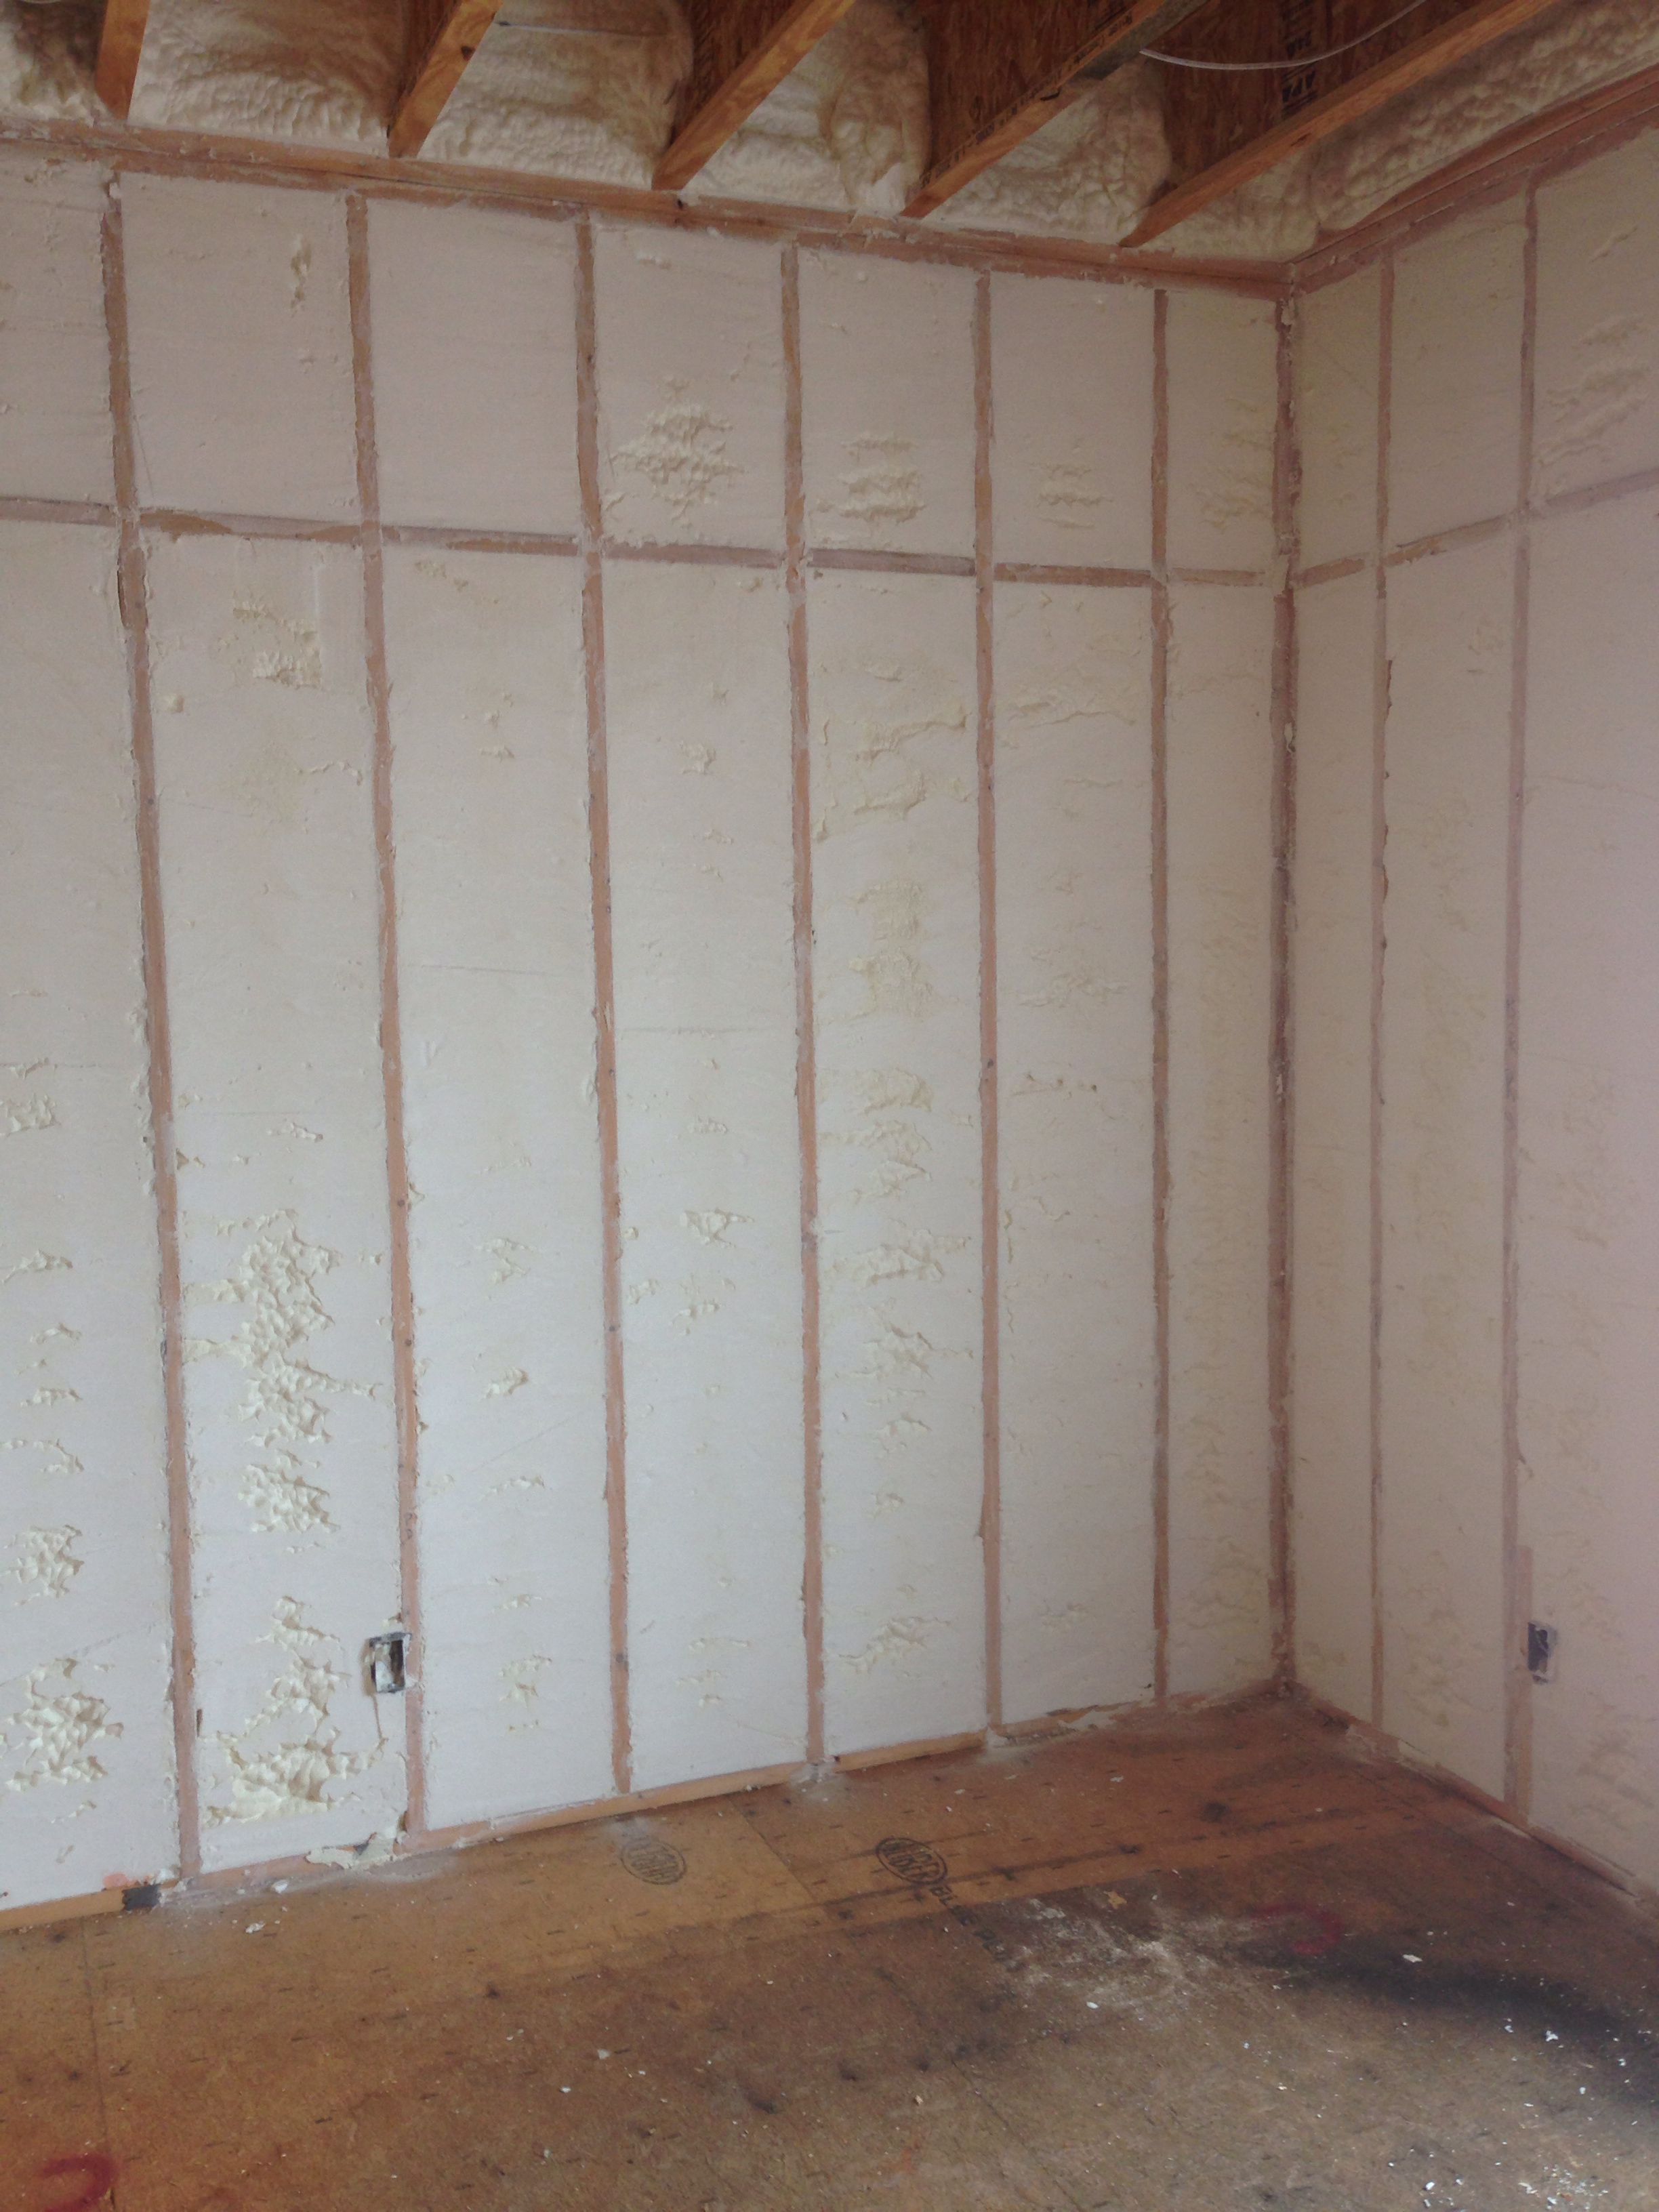 Exterior Walls Filled With Open Cell Spray Foam Insulation Makes A House Tight Comfortable